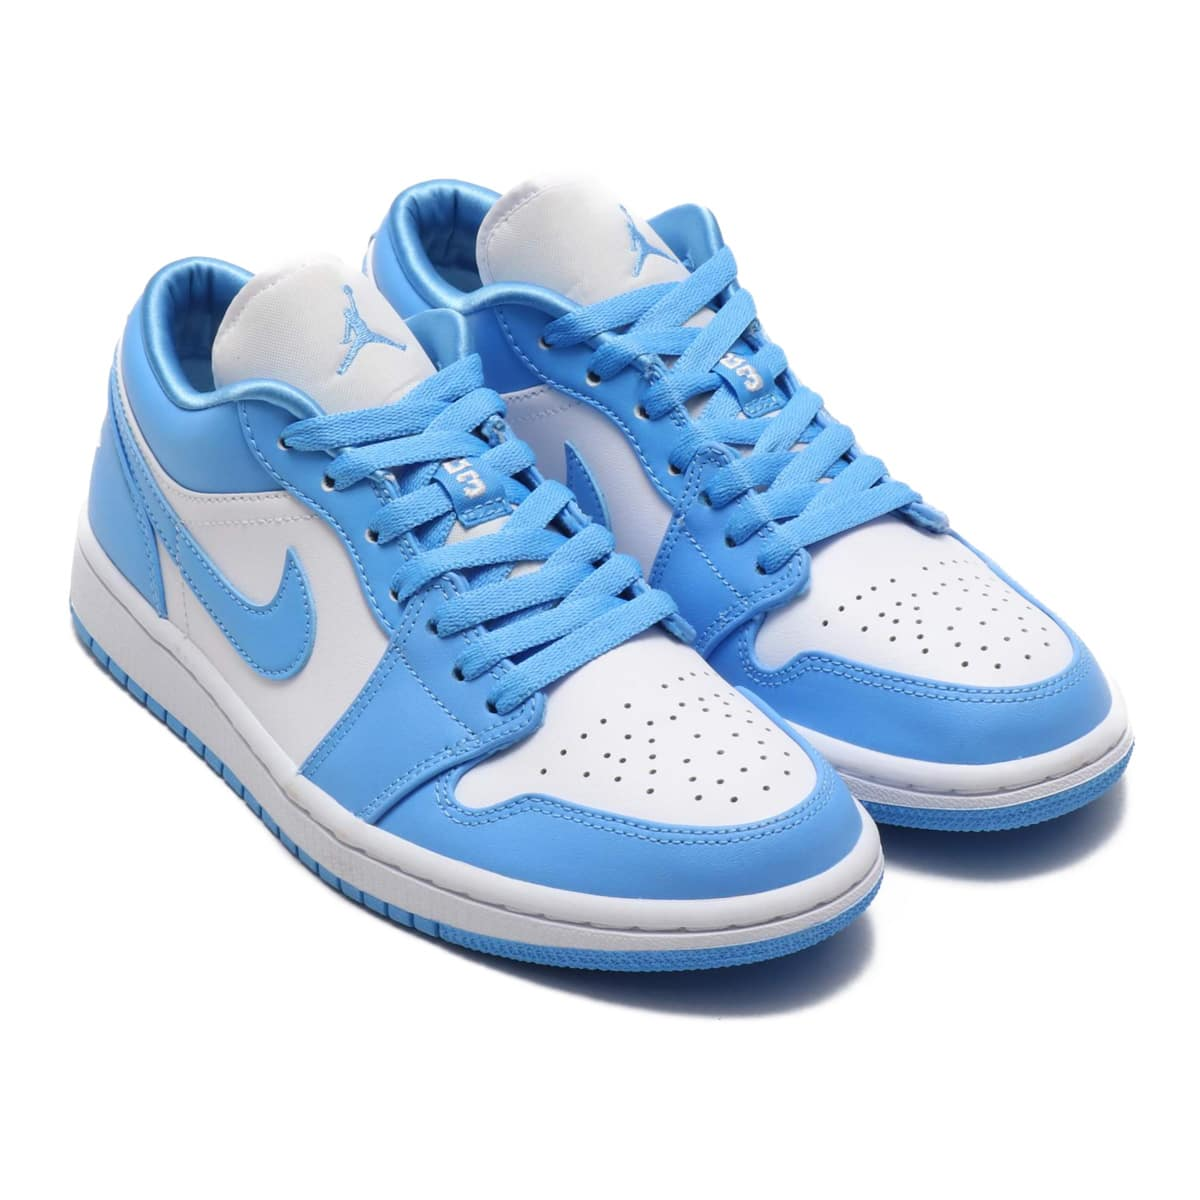 JORDAN BRAND WMNS AIR JORDAN 1 LOW UNIVERSITY BLUE/UNIVERSITY BLUE-WHITE 20SU-S_photo_large